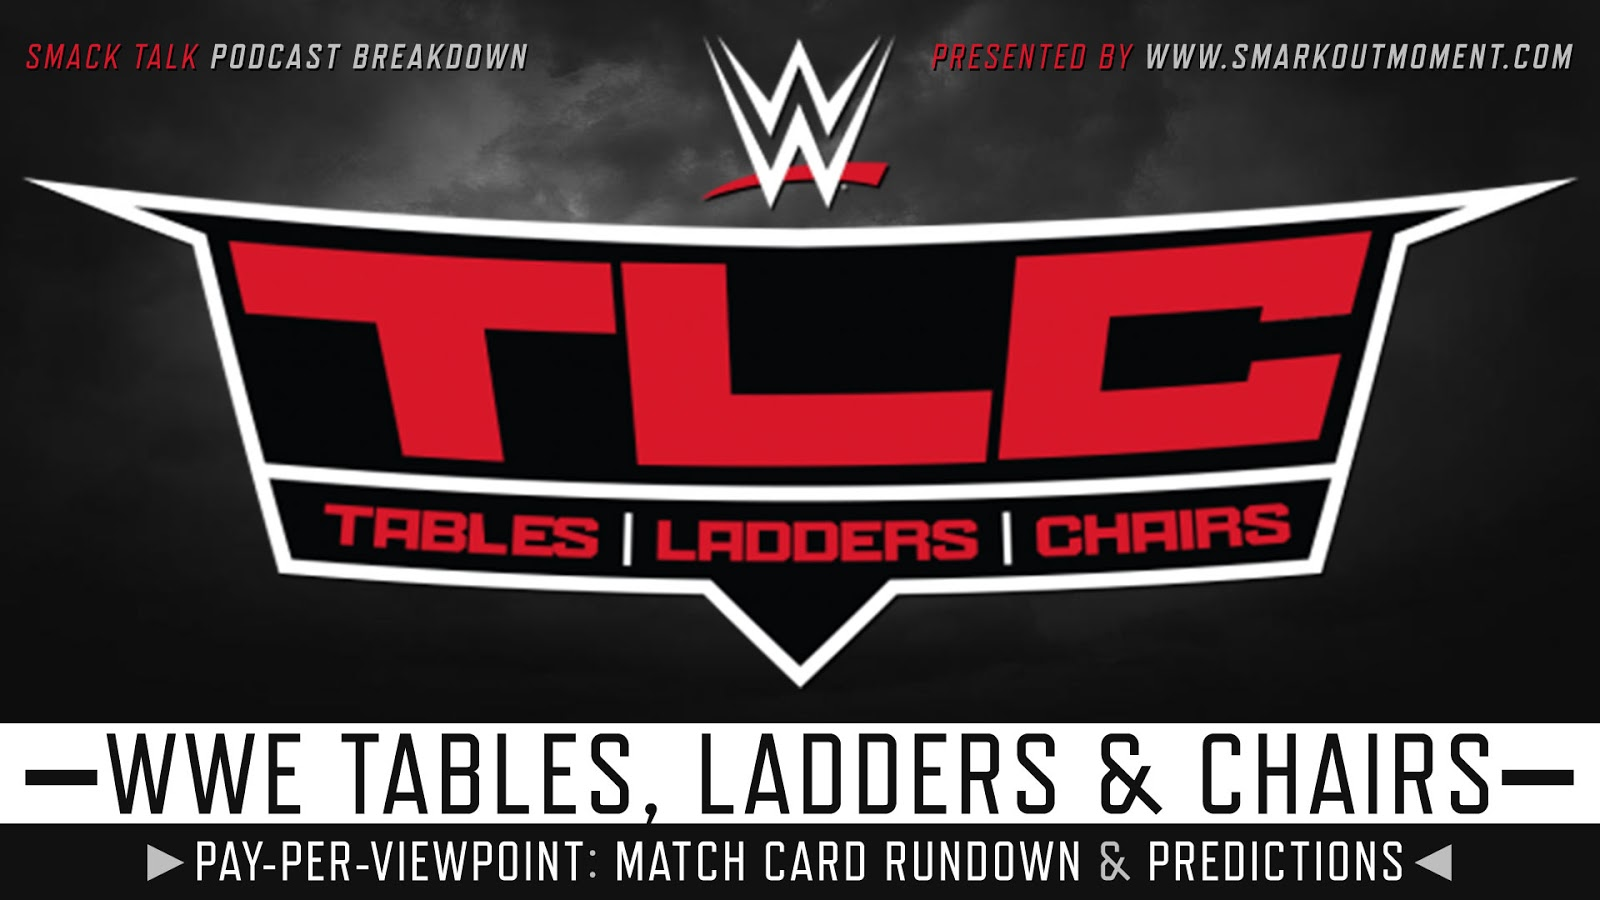 WWE TLC 2018 spoilers podcast